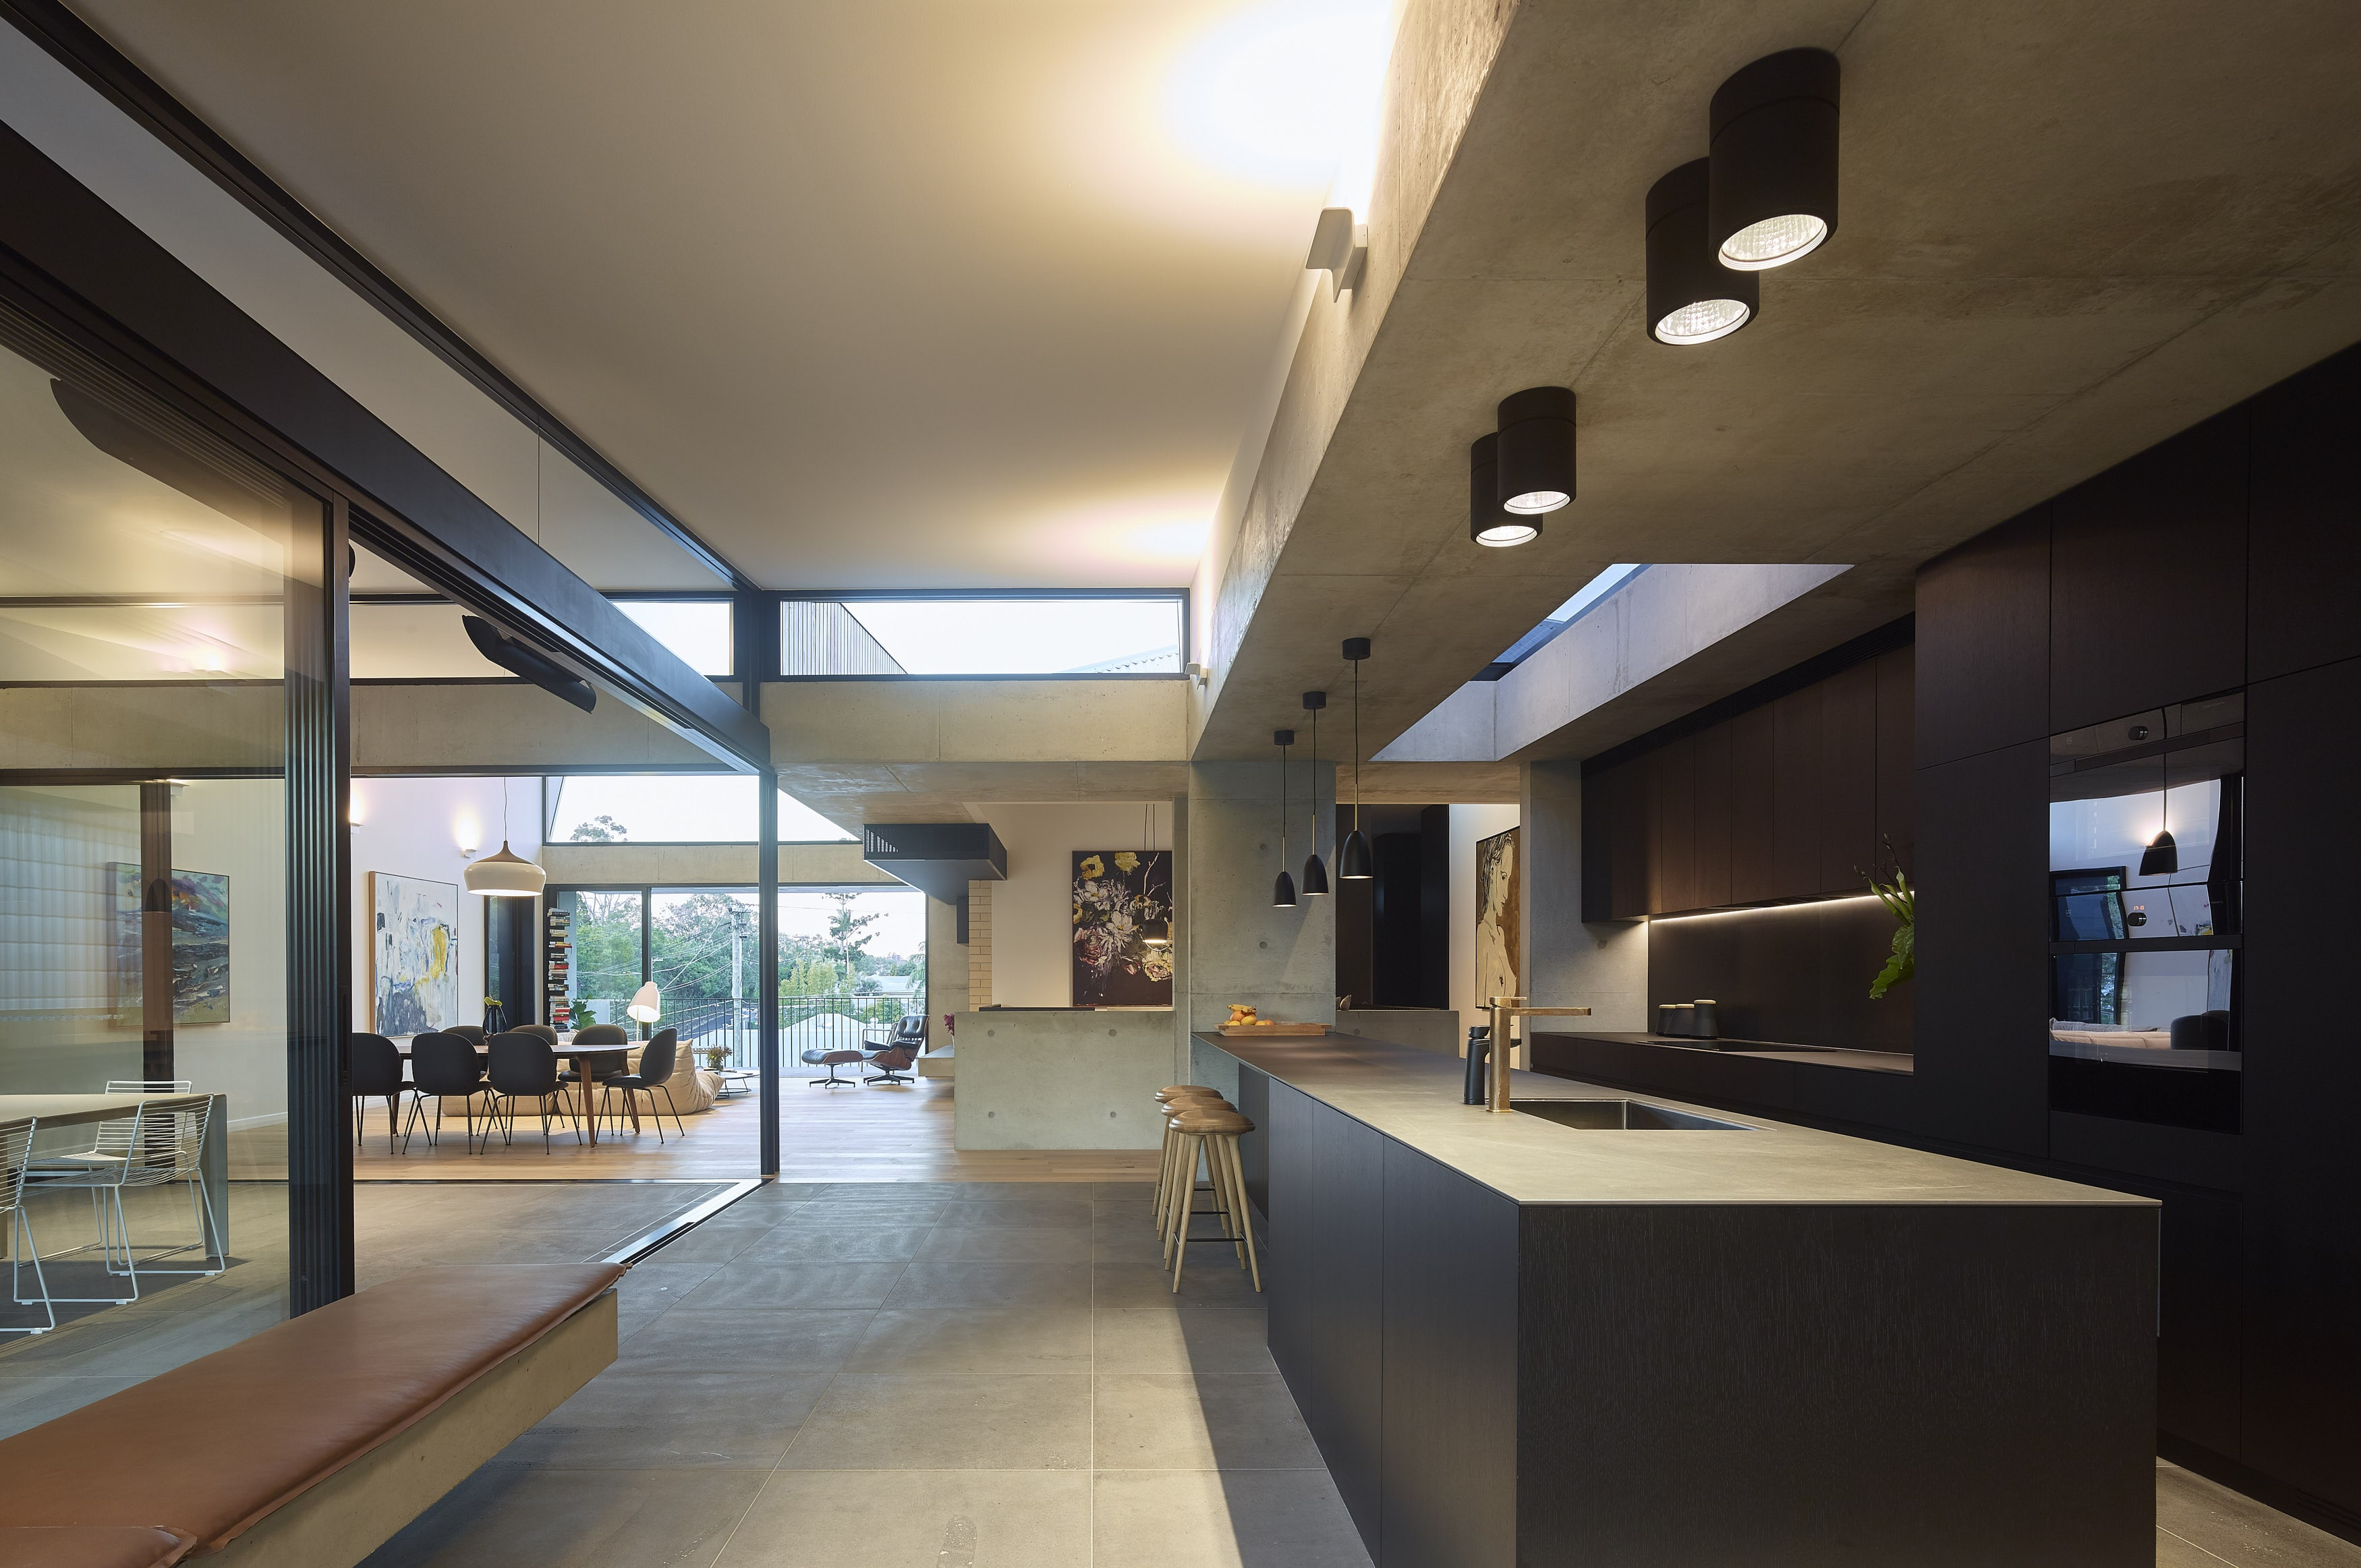 Gallery Of Sorrel Street By Shaun Lockyer Architects Local Australian Design And Interiors Paddington, Qld Image 23 Min